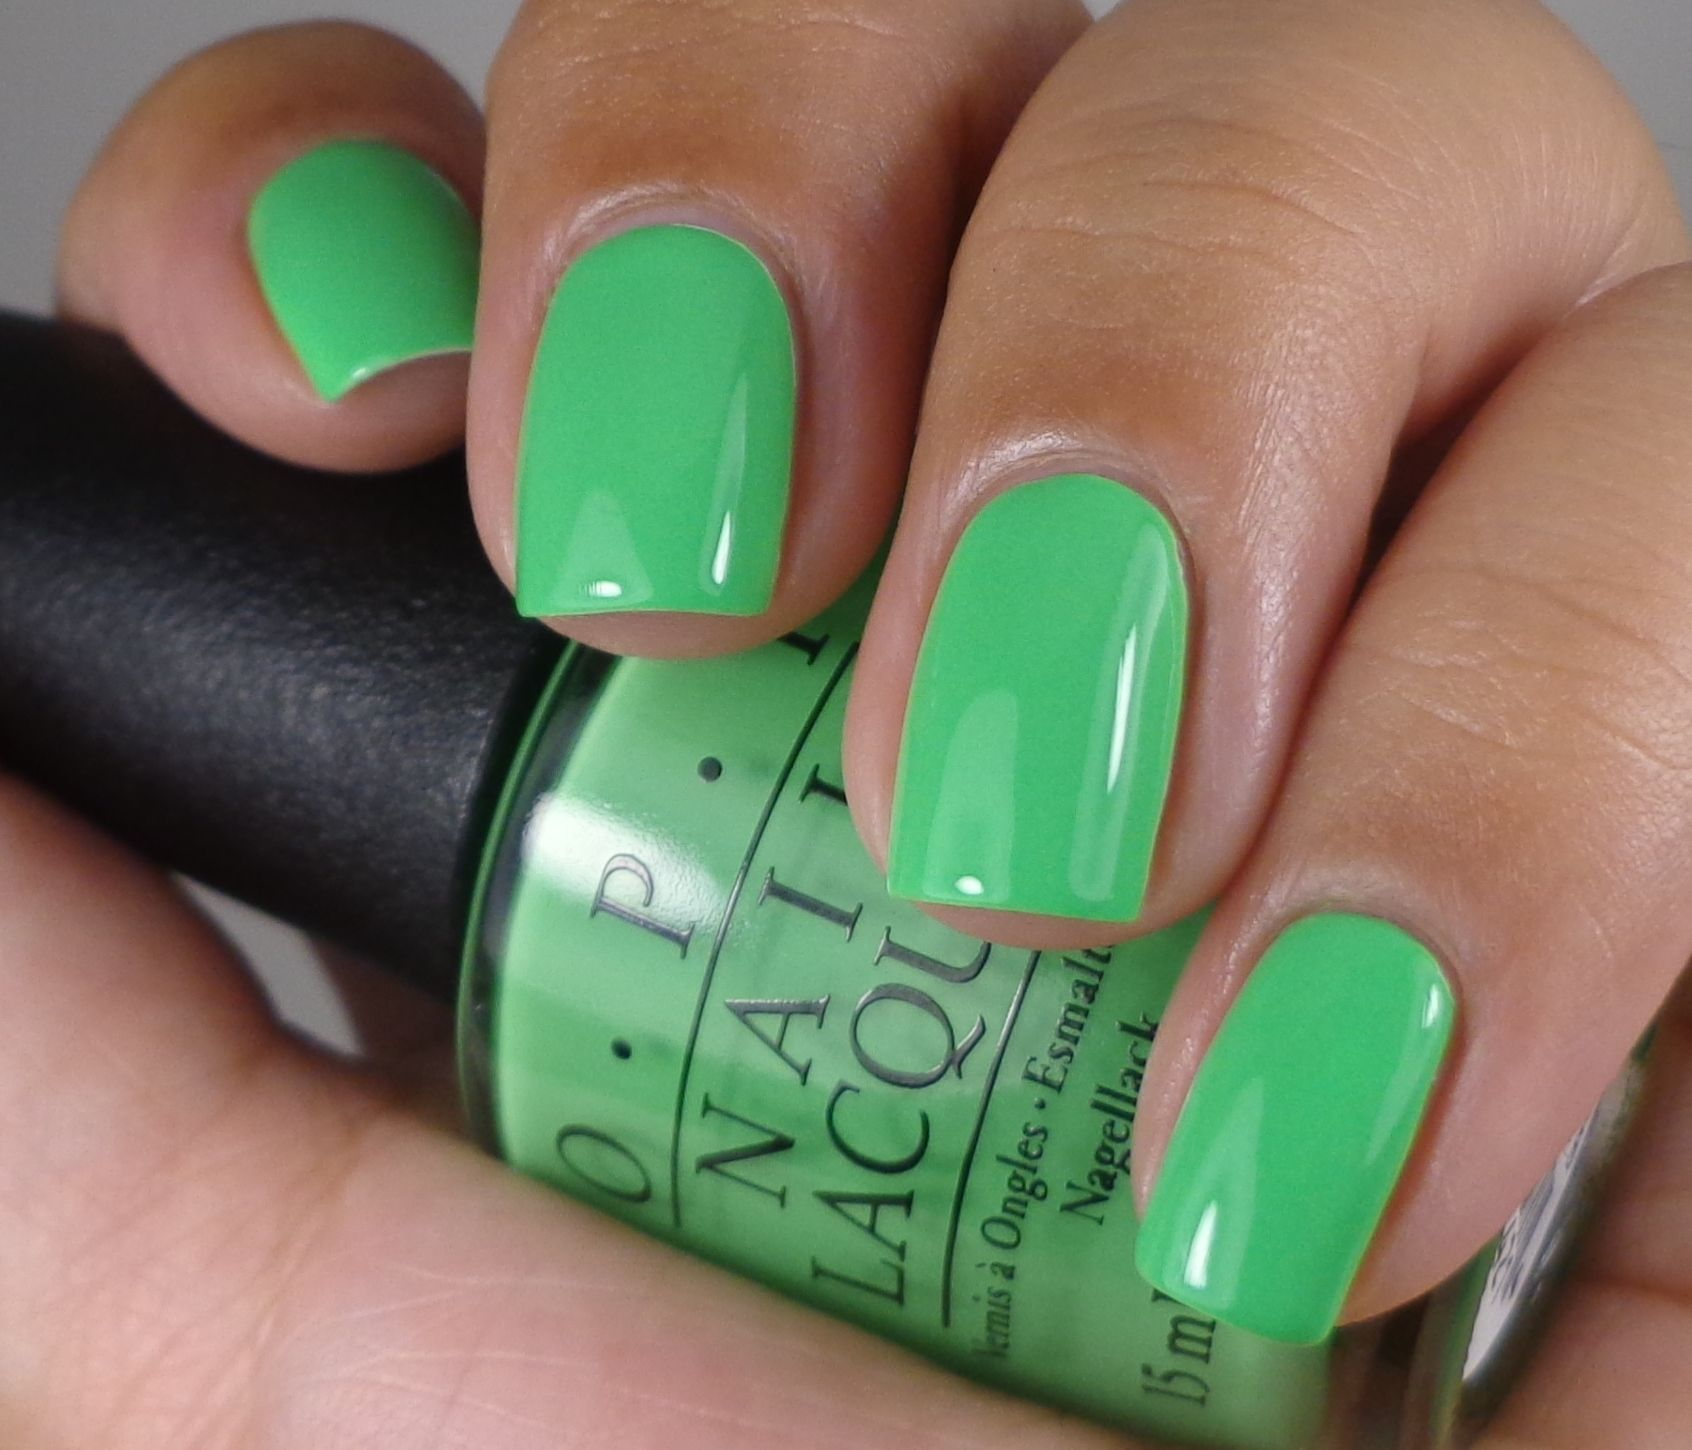 OPI Neons Collection 2014 | OPI, Neon and Opi collections